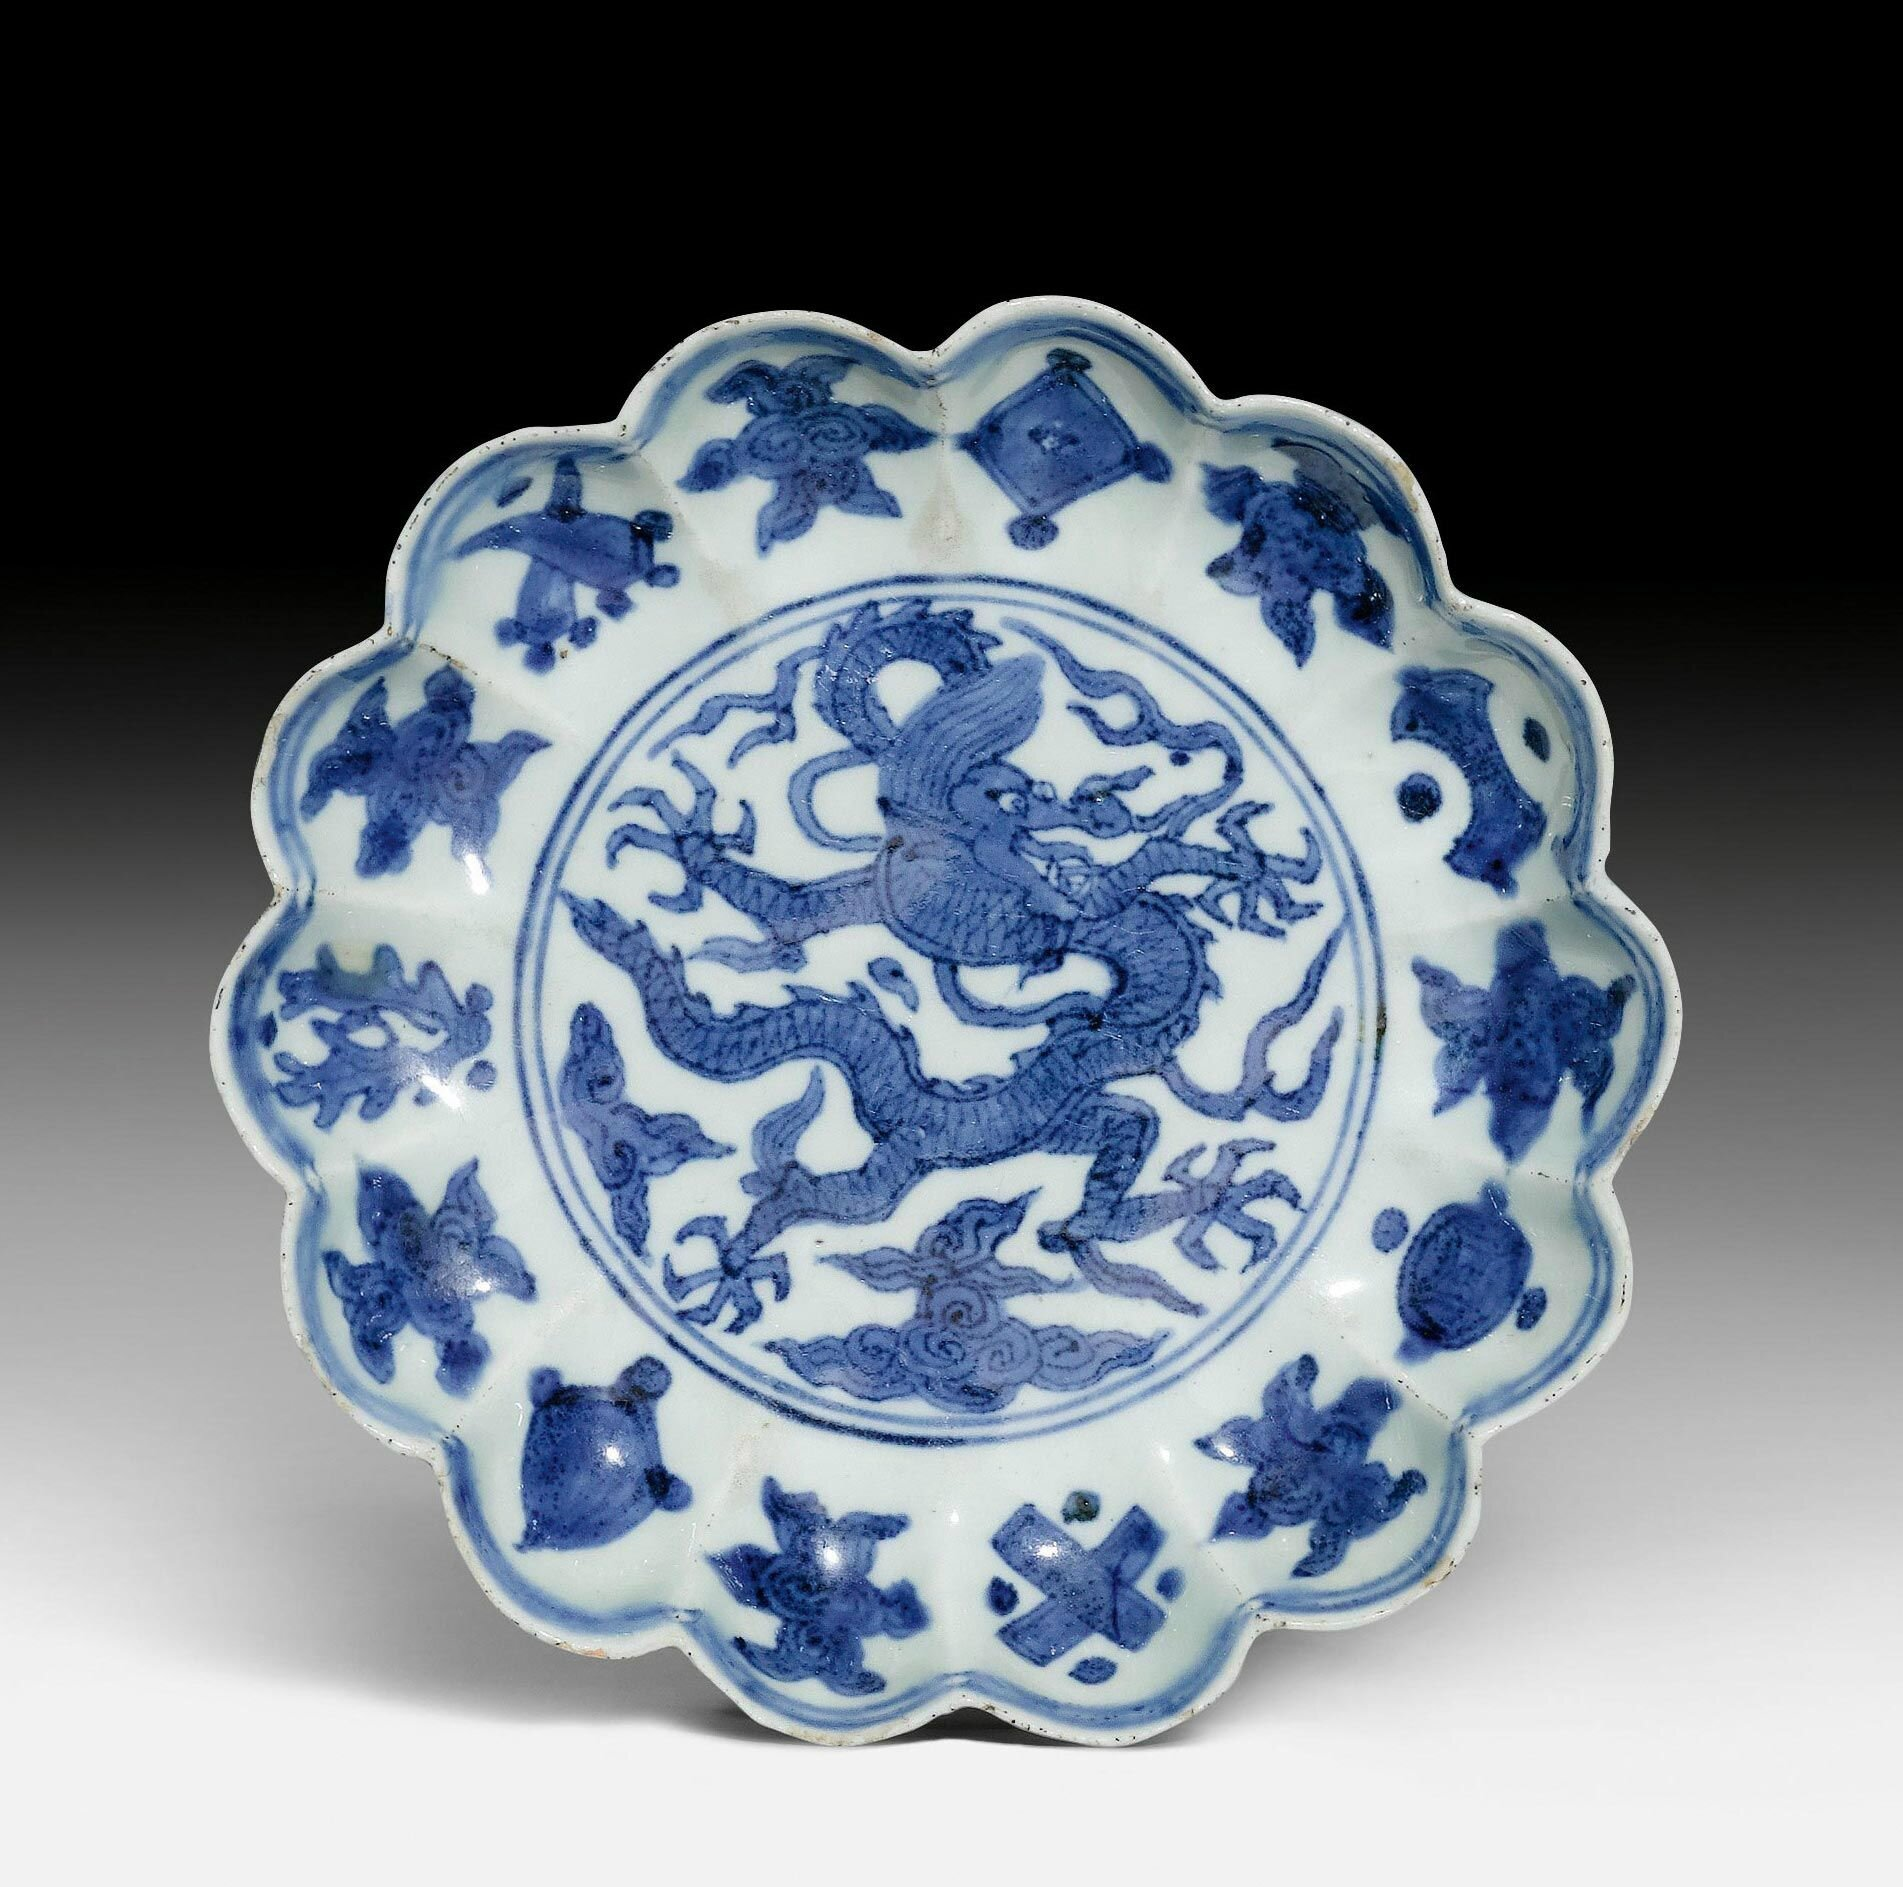 A very rare blue and white lobed saucer dish painted with an Imperial dragon and Daoist symbols, Longqing mark and of the period (1567-1572)